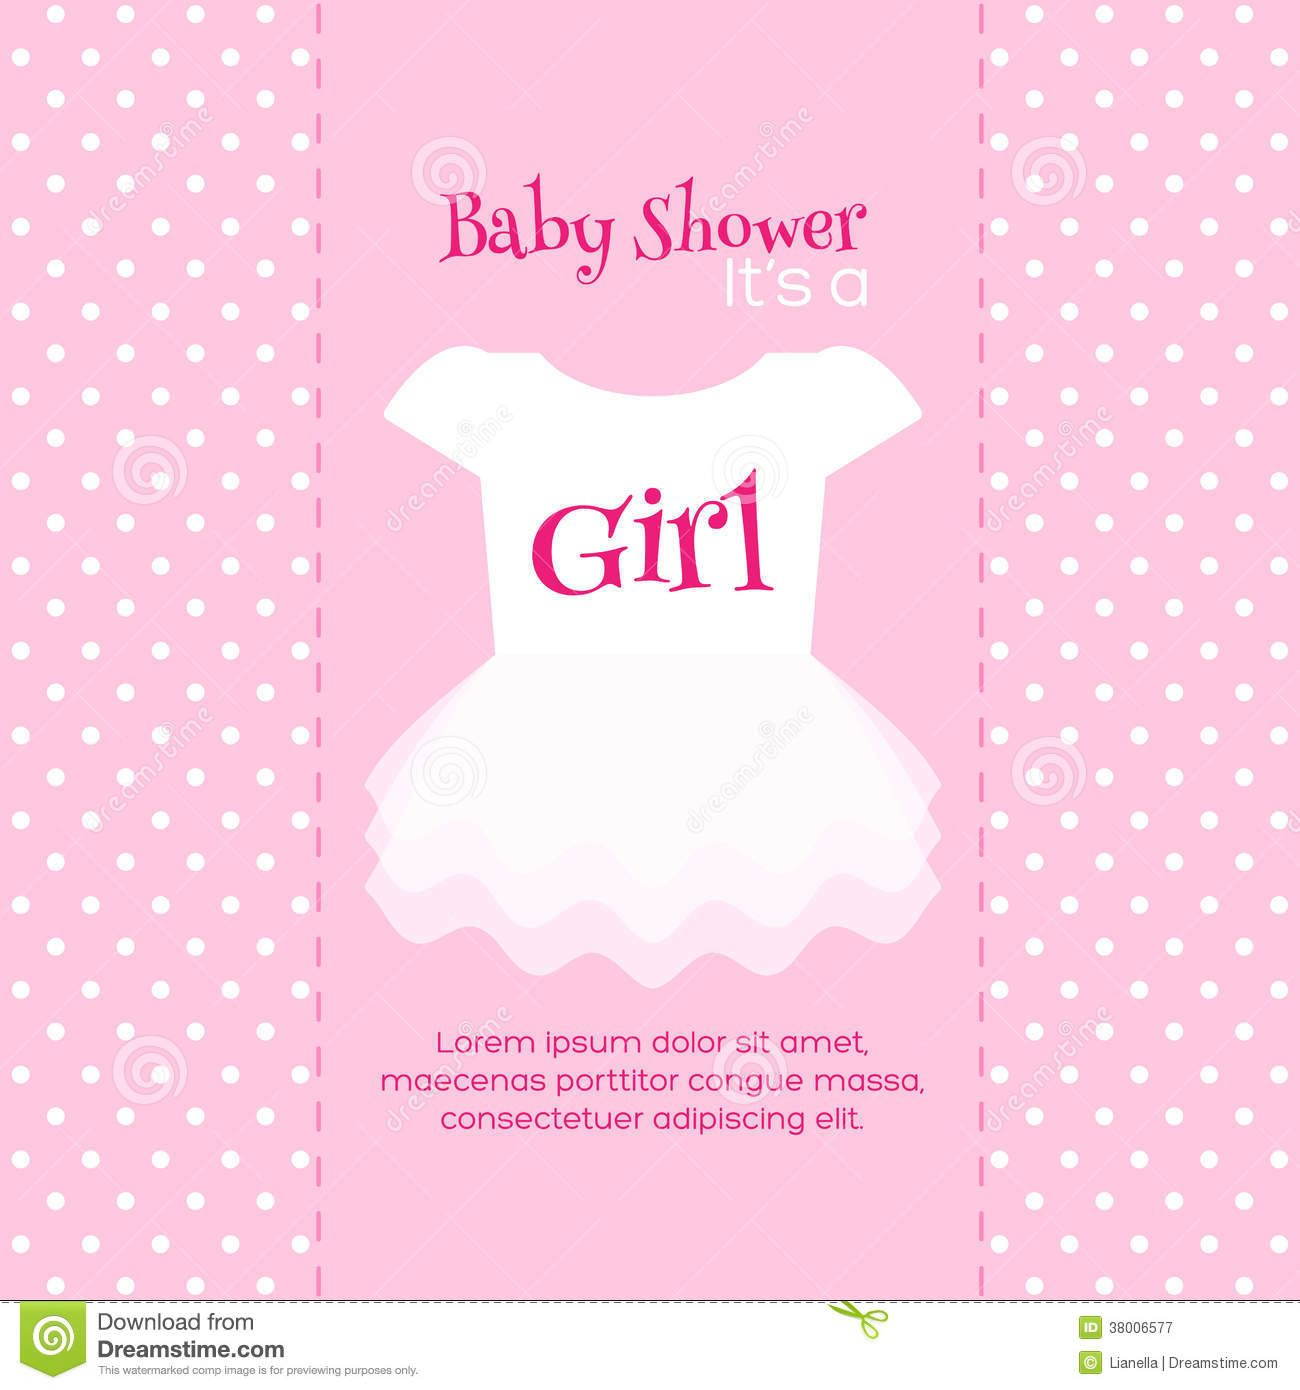 Design Free Printable Baby Shower Invitations For Girls Ckylares - Free printable baby shower invitations templates for girl